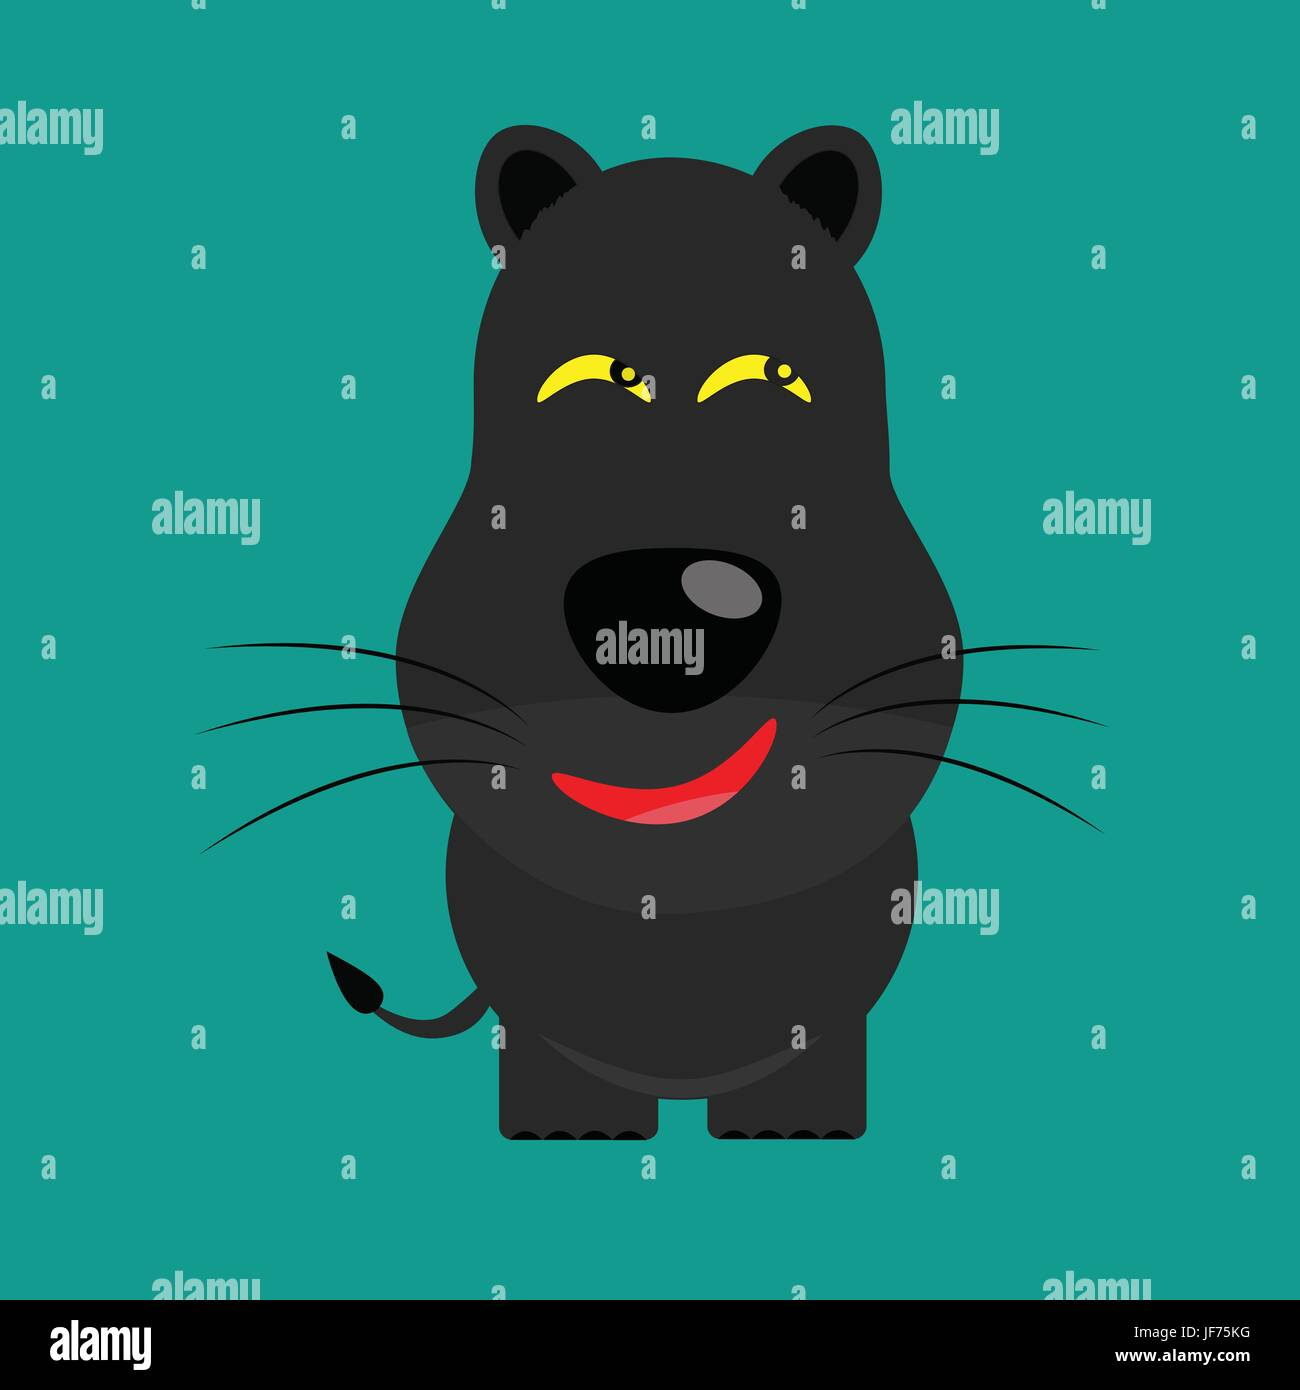 tricky black leopard gartoon character - Stock Image